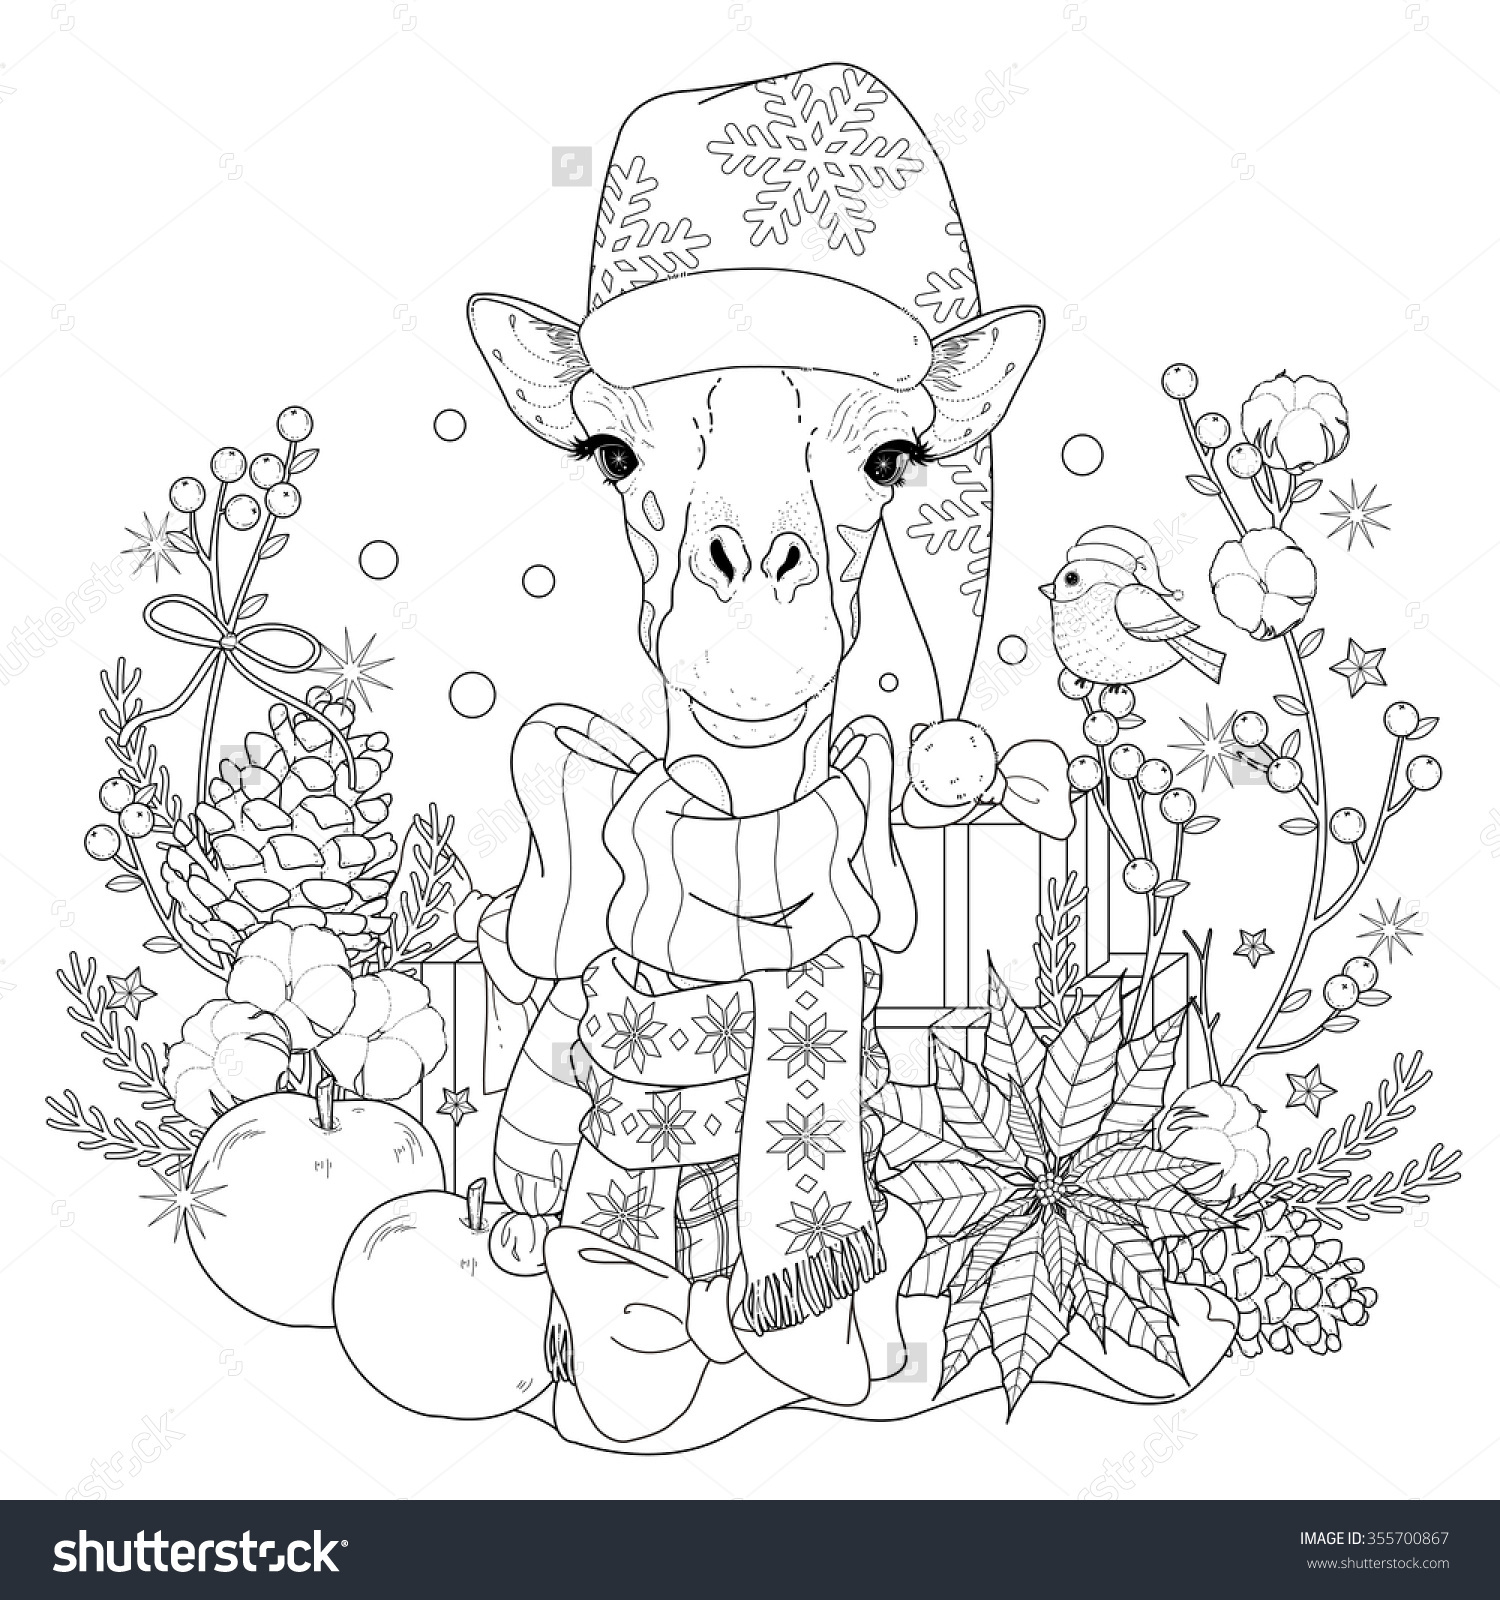 christmas giraffe coloring page with decorations in exquisite line preview save to a lightbox